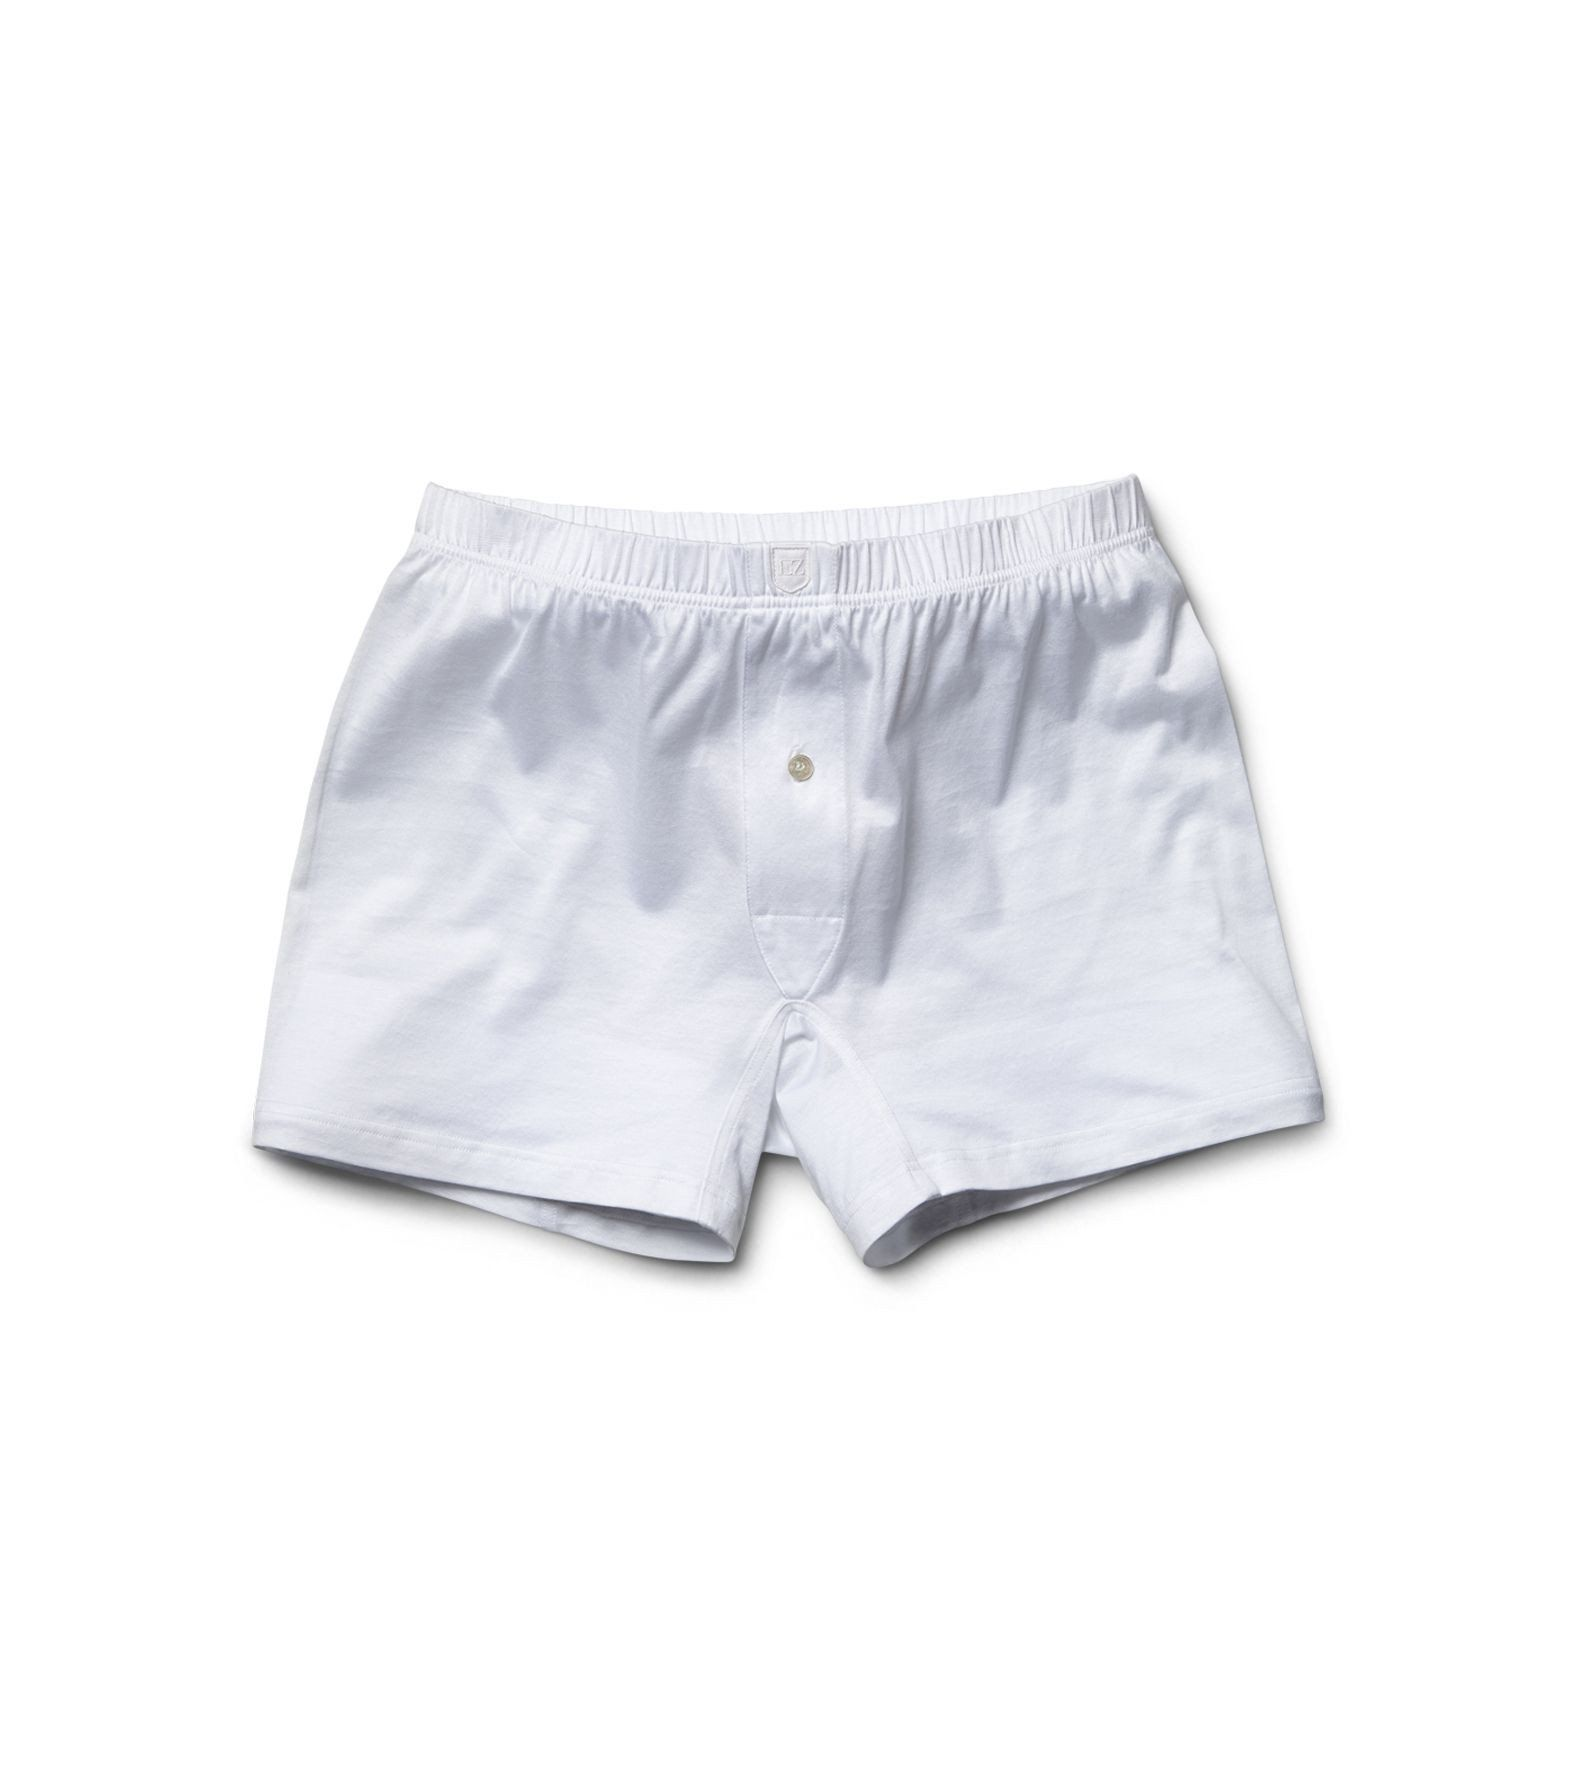 White Cotton Boxer Briefs,Underwear,zegna, | GentRow.com